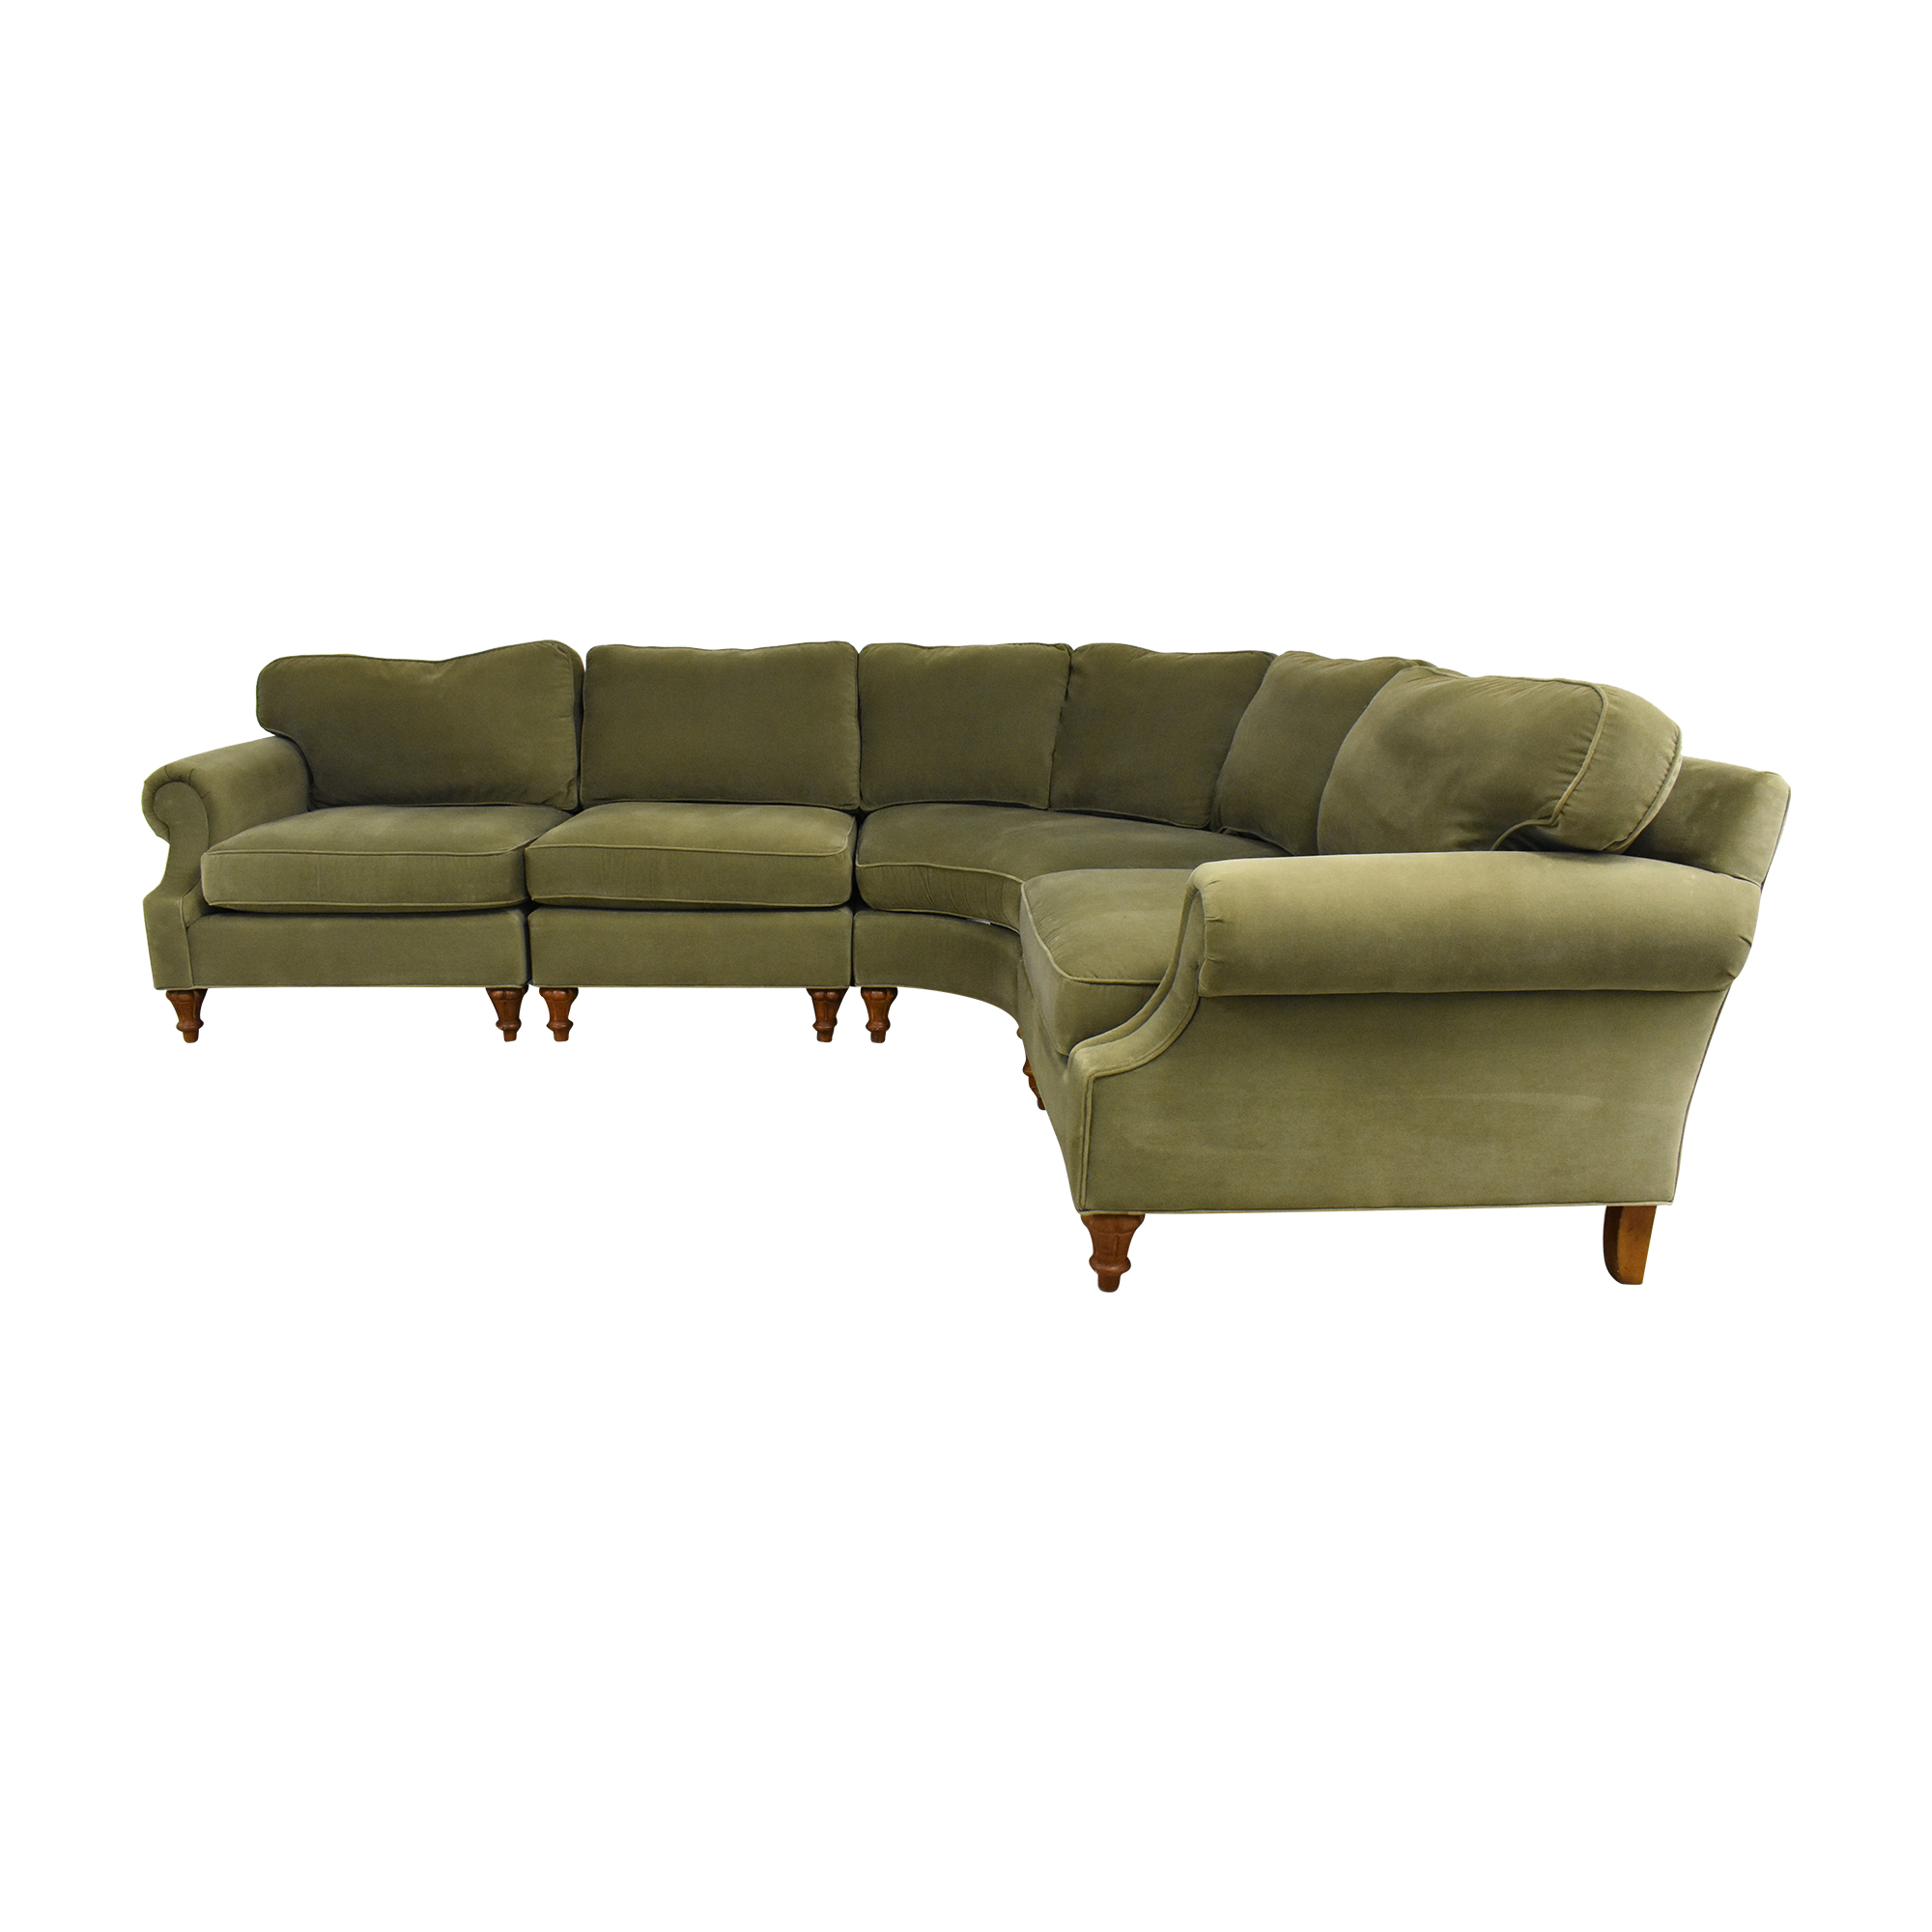 Highland House Furniture Highland House Furniture Curved Sectional Sofa ma